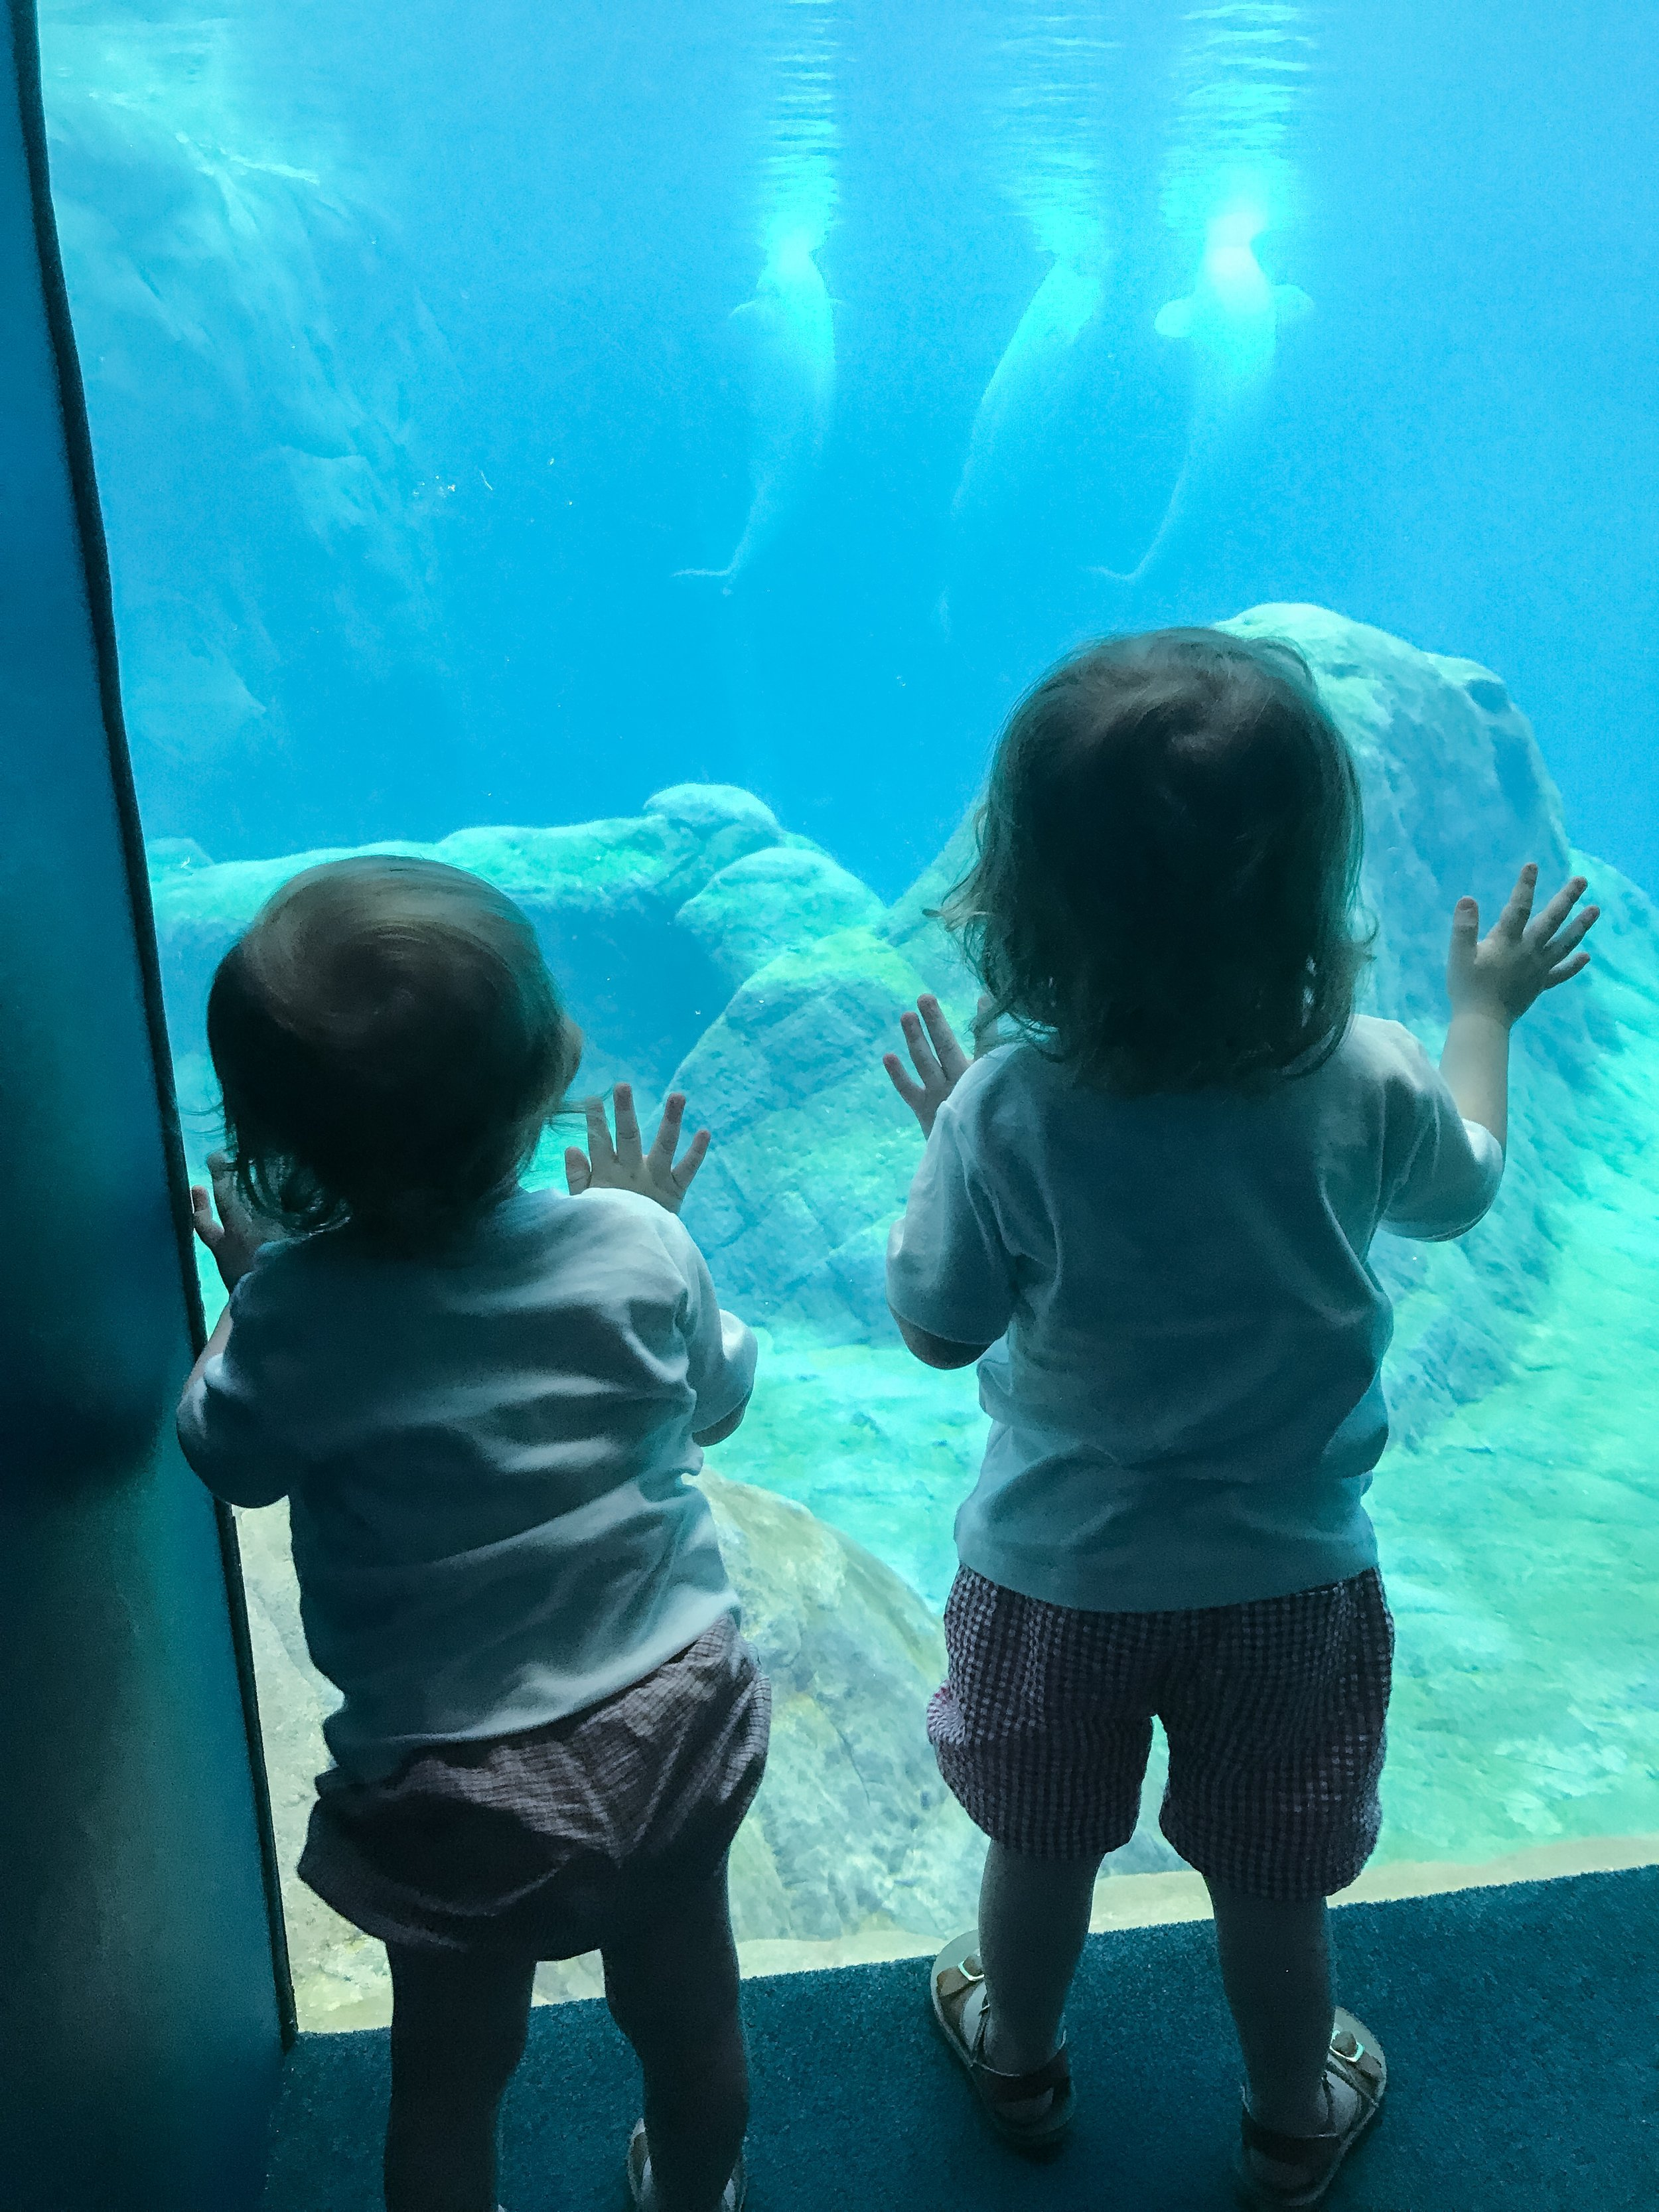 Their wonder and awe at the majestic creatures of God's creation was sweet to watch. (Featuring: the beluga whales!)